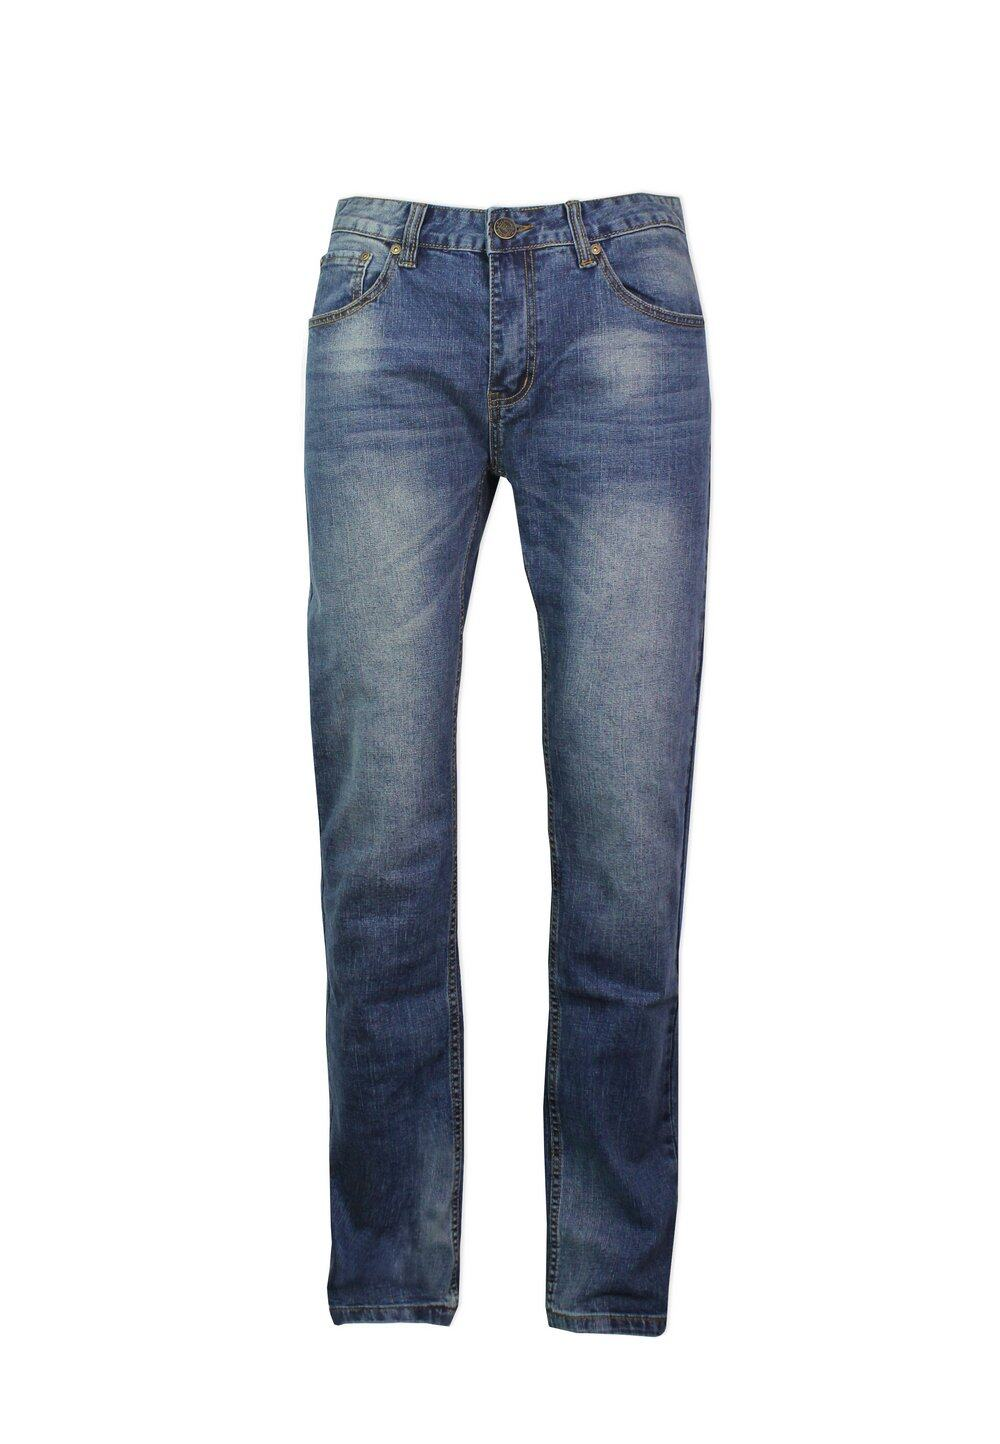 Exhaust Stretch Slim Fit Jeans 986